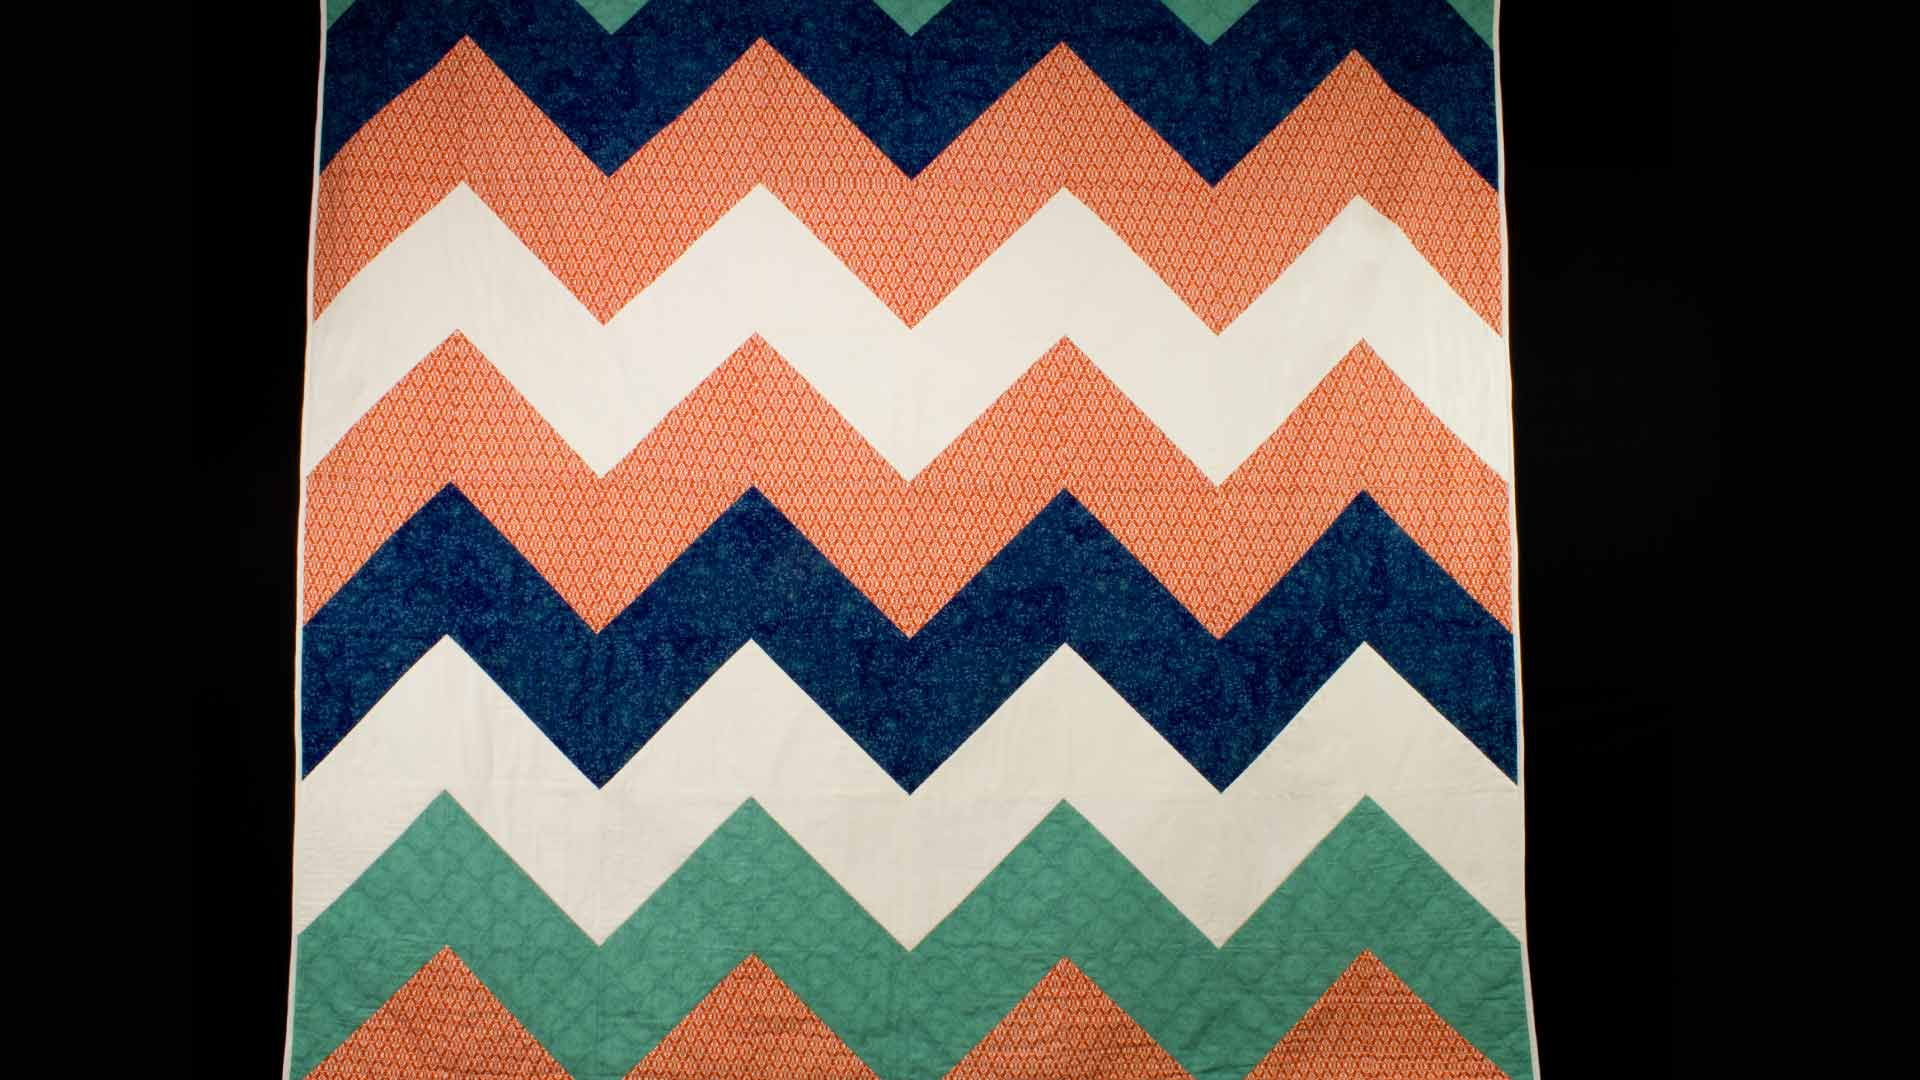 Chevron Quilt Top - Professor Pincushion : chevron quilt - Adamdwight.com